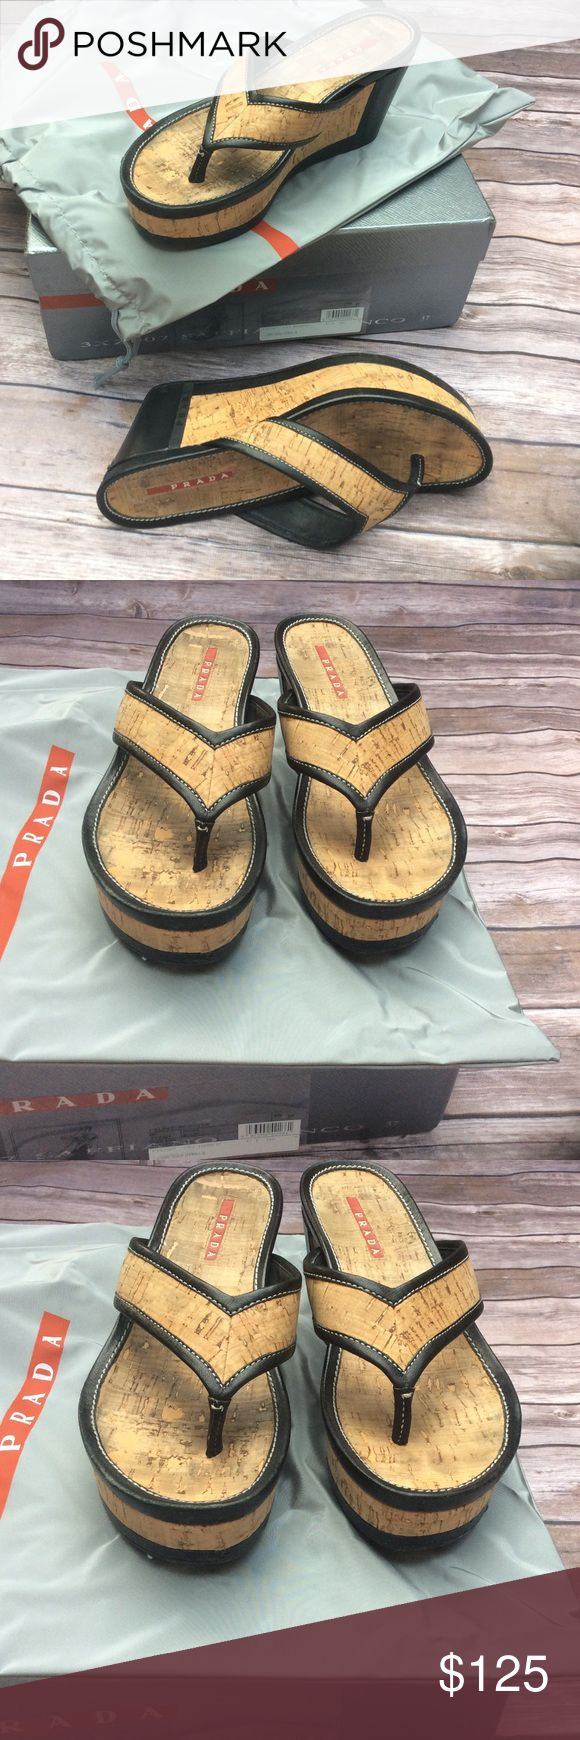 ⌛️1 HOUR SALE⌛️ PRADA WEDGE FLIP FLOPS SALE ENDS AT 11:00 PM CST. Authentic. Natural cork and black in color. Still have lots of life left in these. Box and dust bag included. No trades or modeling. Prada Shoes Wedges